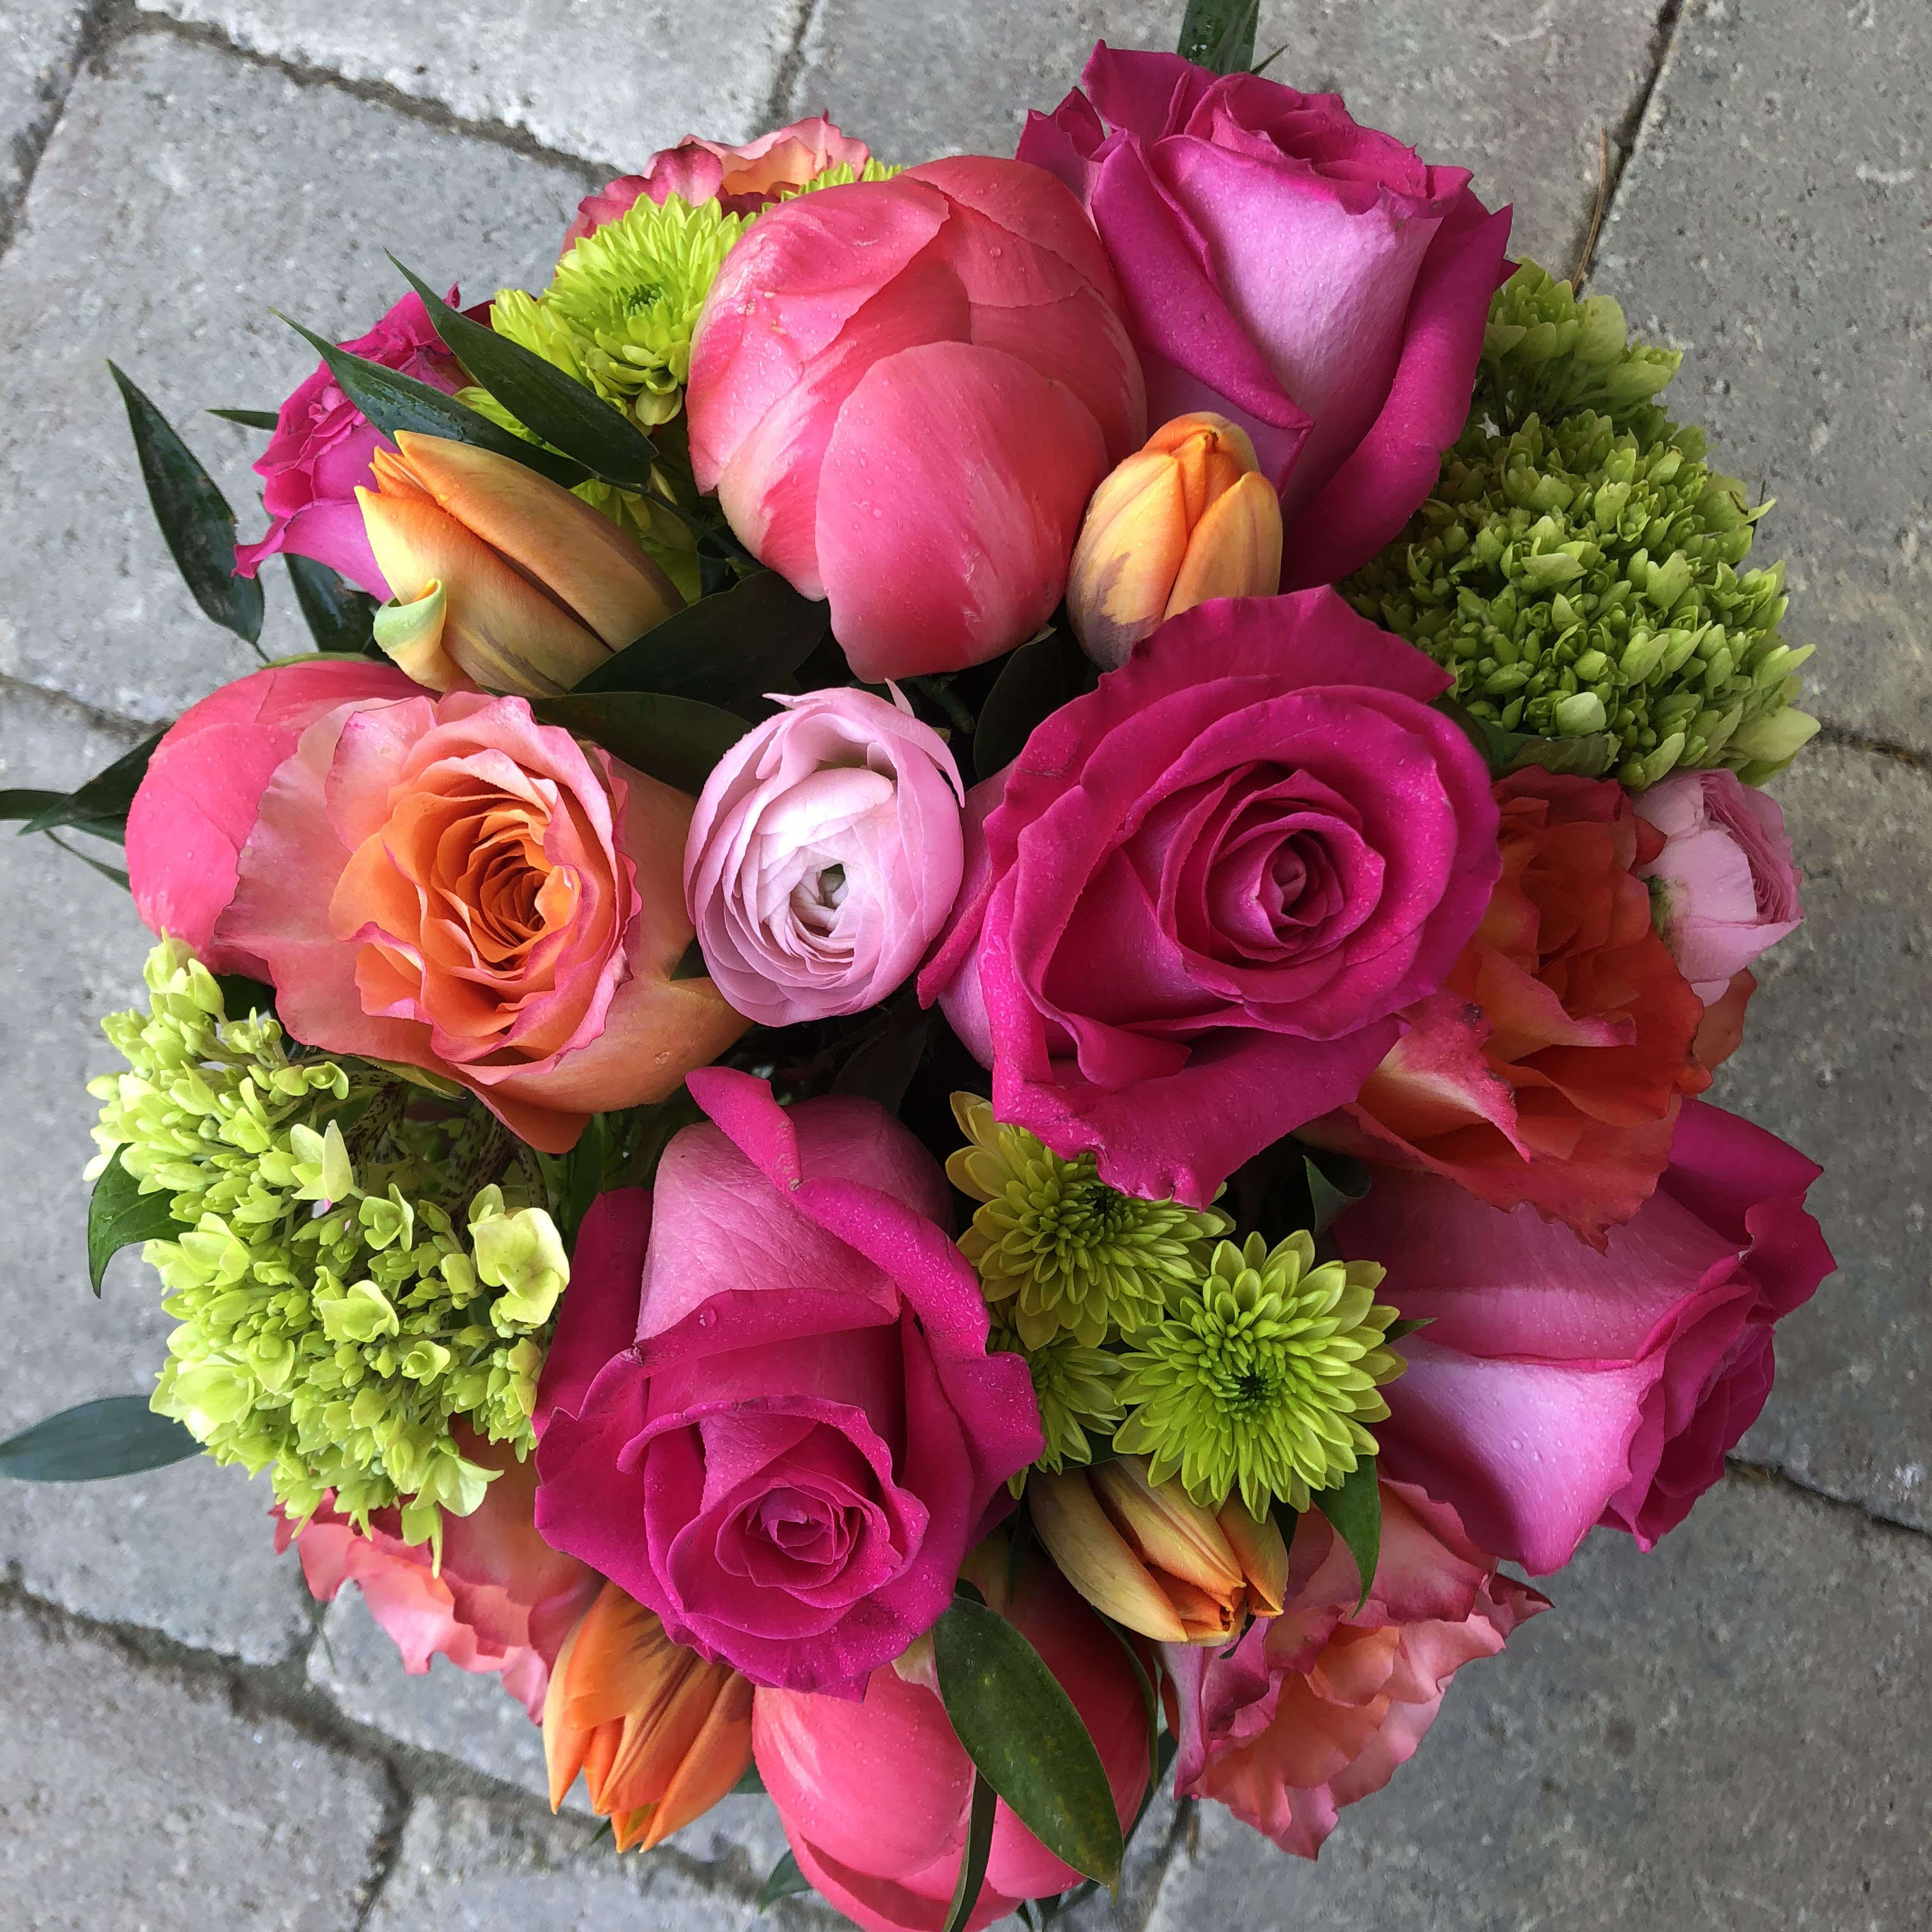 HOT Pinks in Large Vase - Mix of Hot Pink Flowers in a Large Vase Since